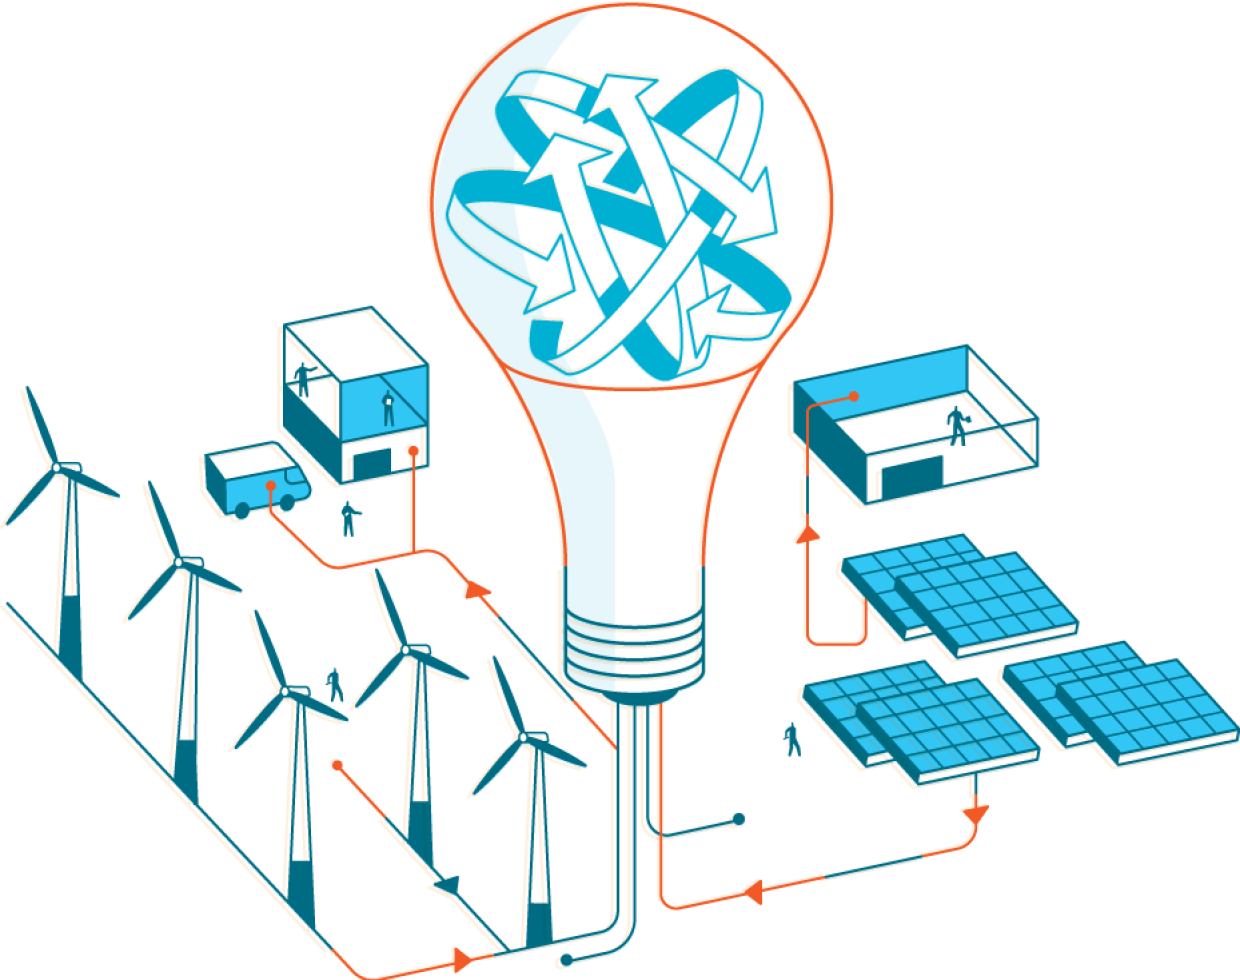 An illustration of renewable energy featuring a light bulb, wind turbines, solar panels, and a delivery truck